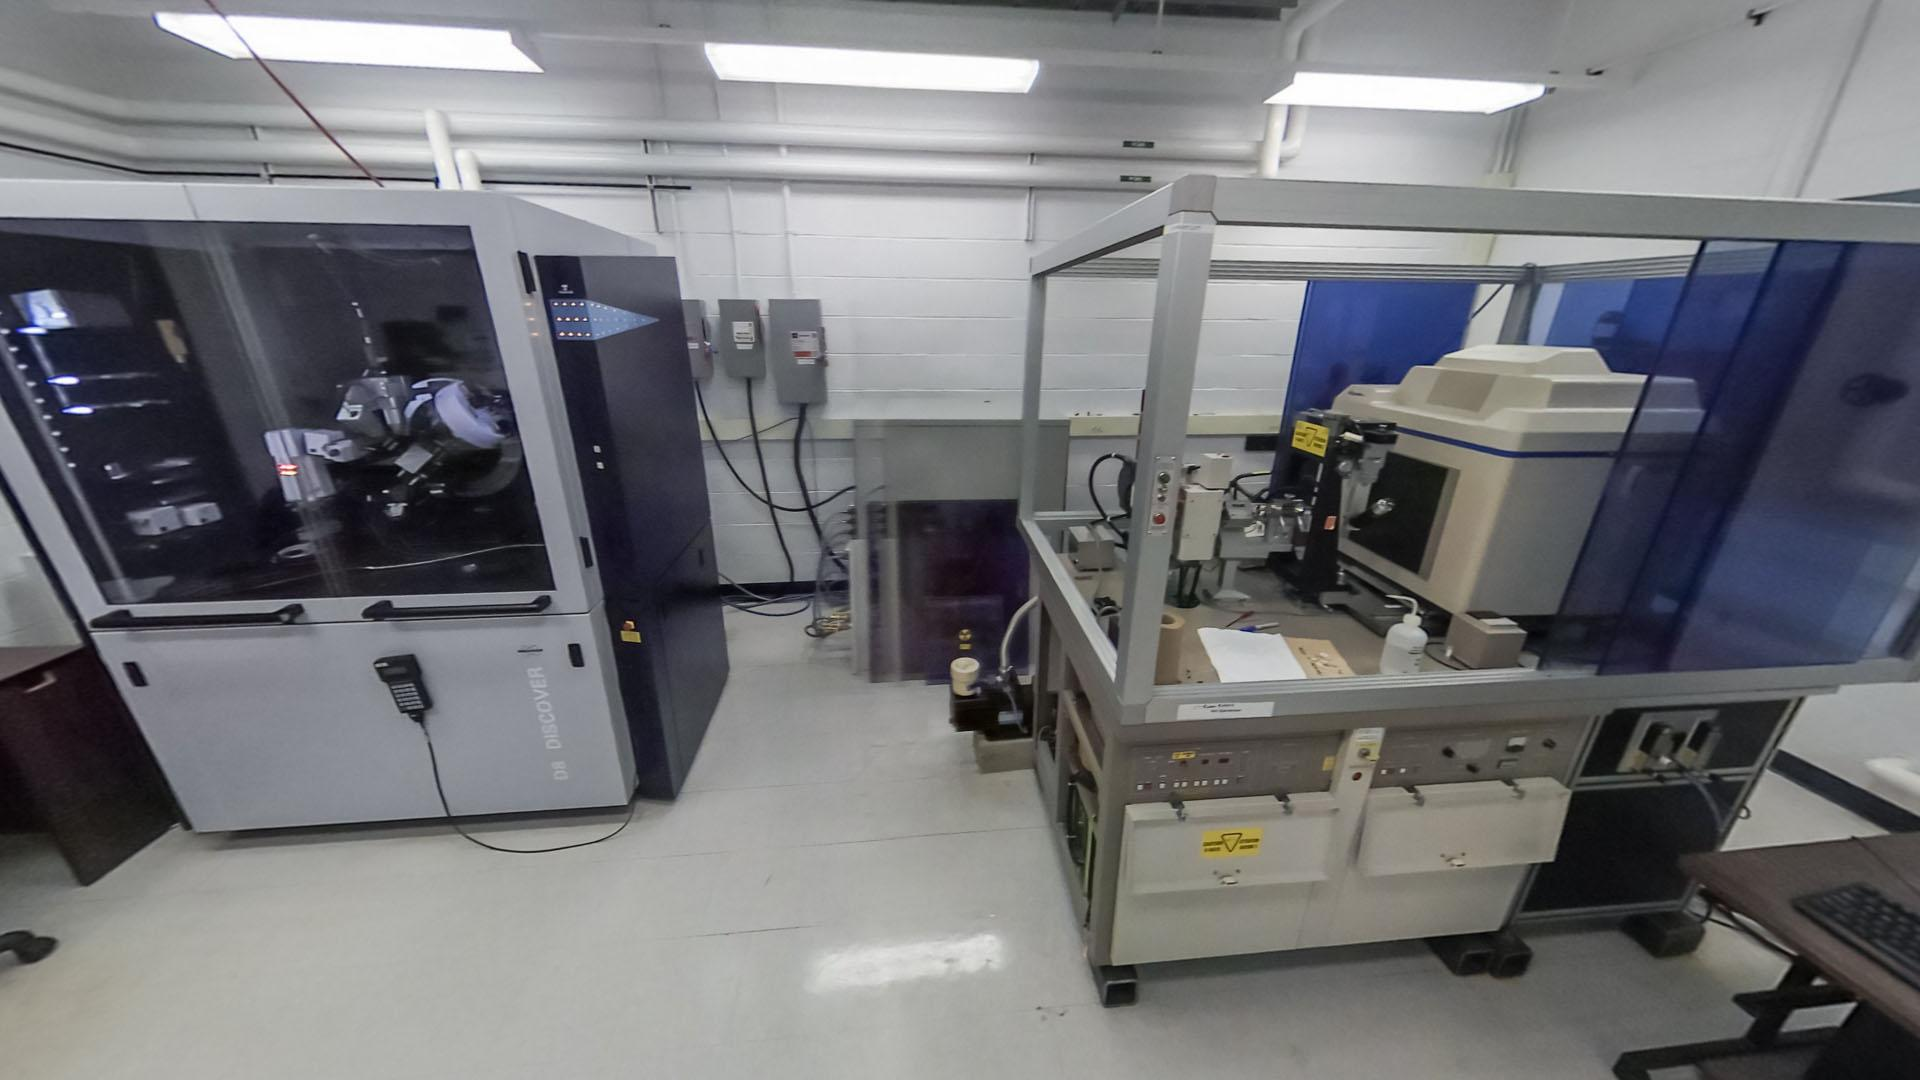 MCMASTER ANALYTICAL X-RAY DIFFRACTION FACILITY (MAX)